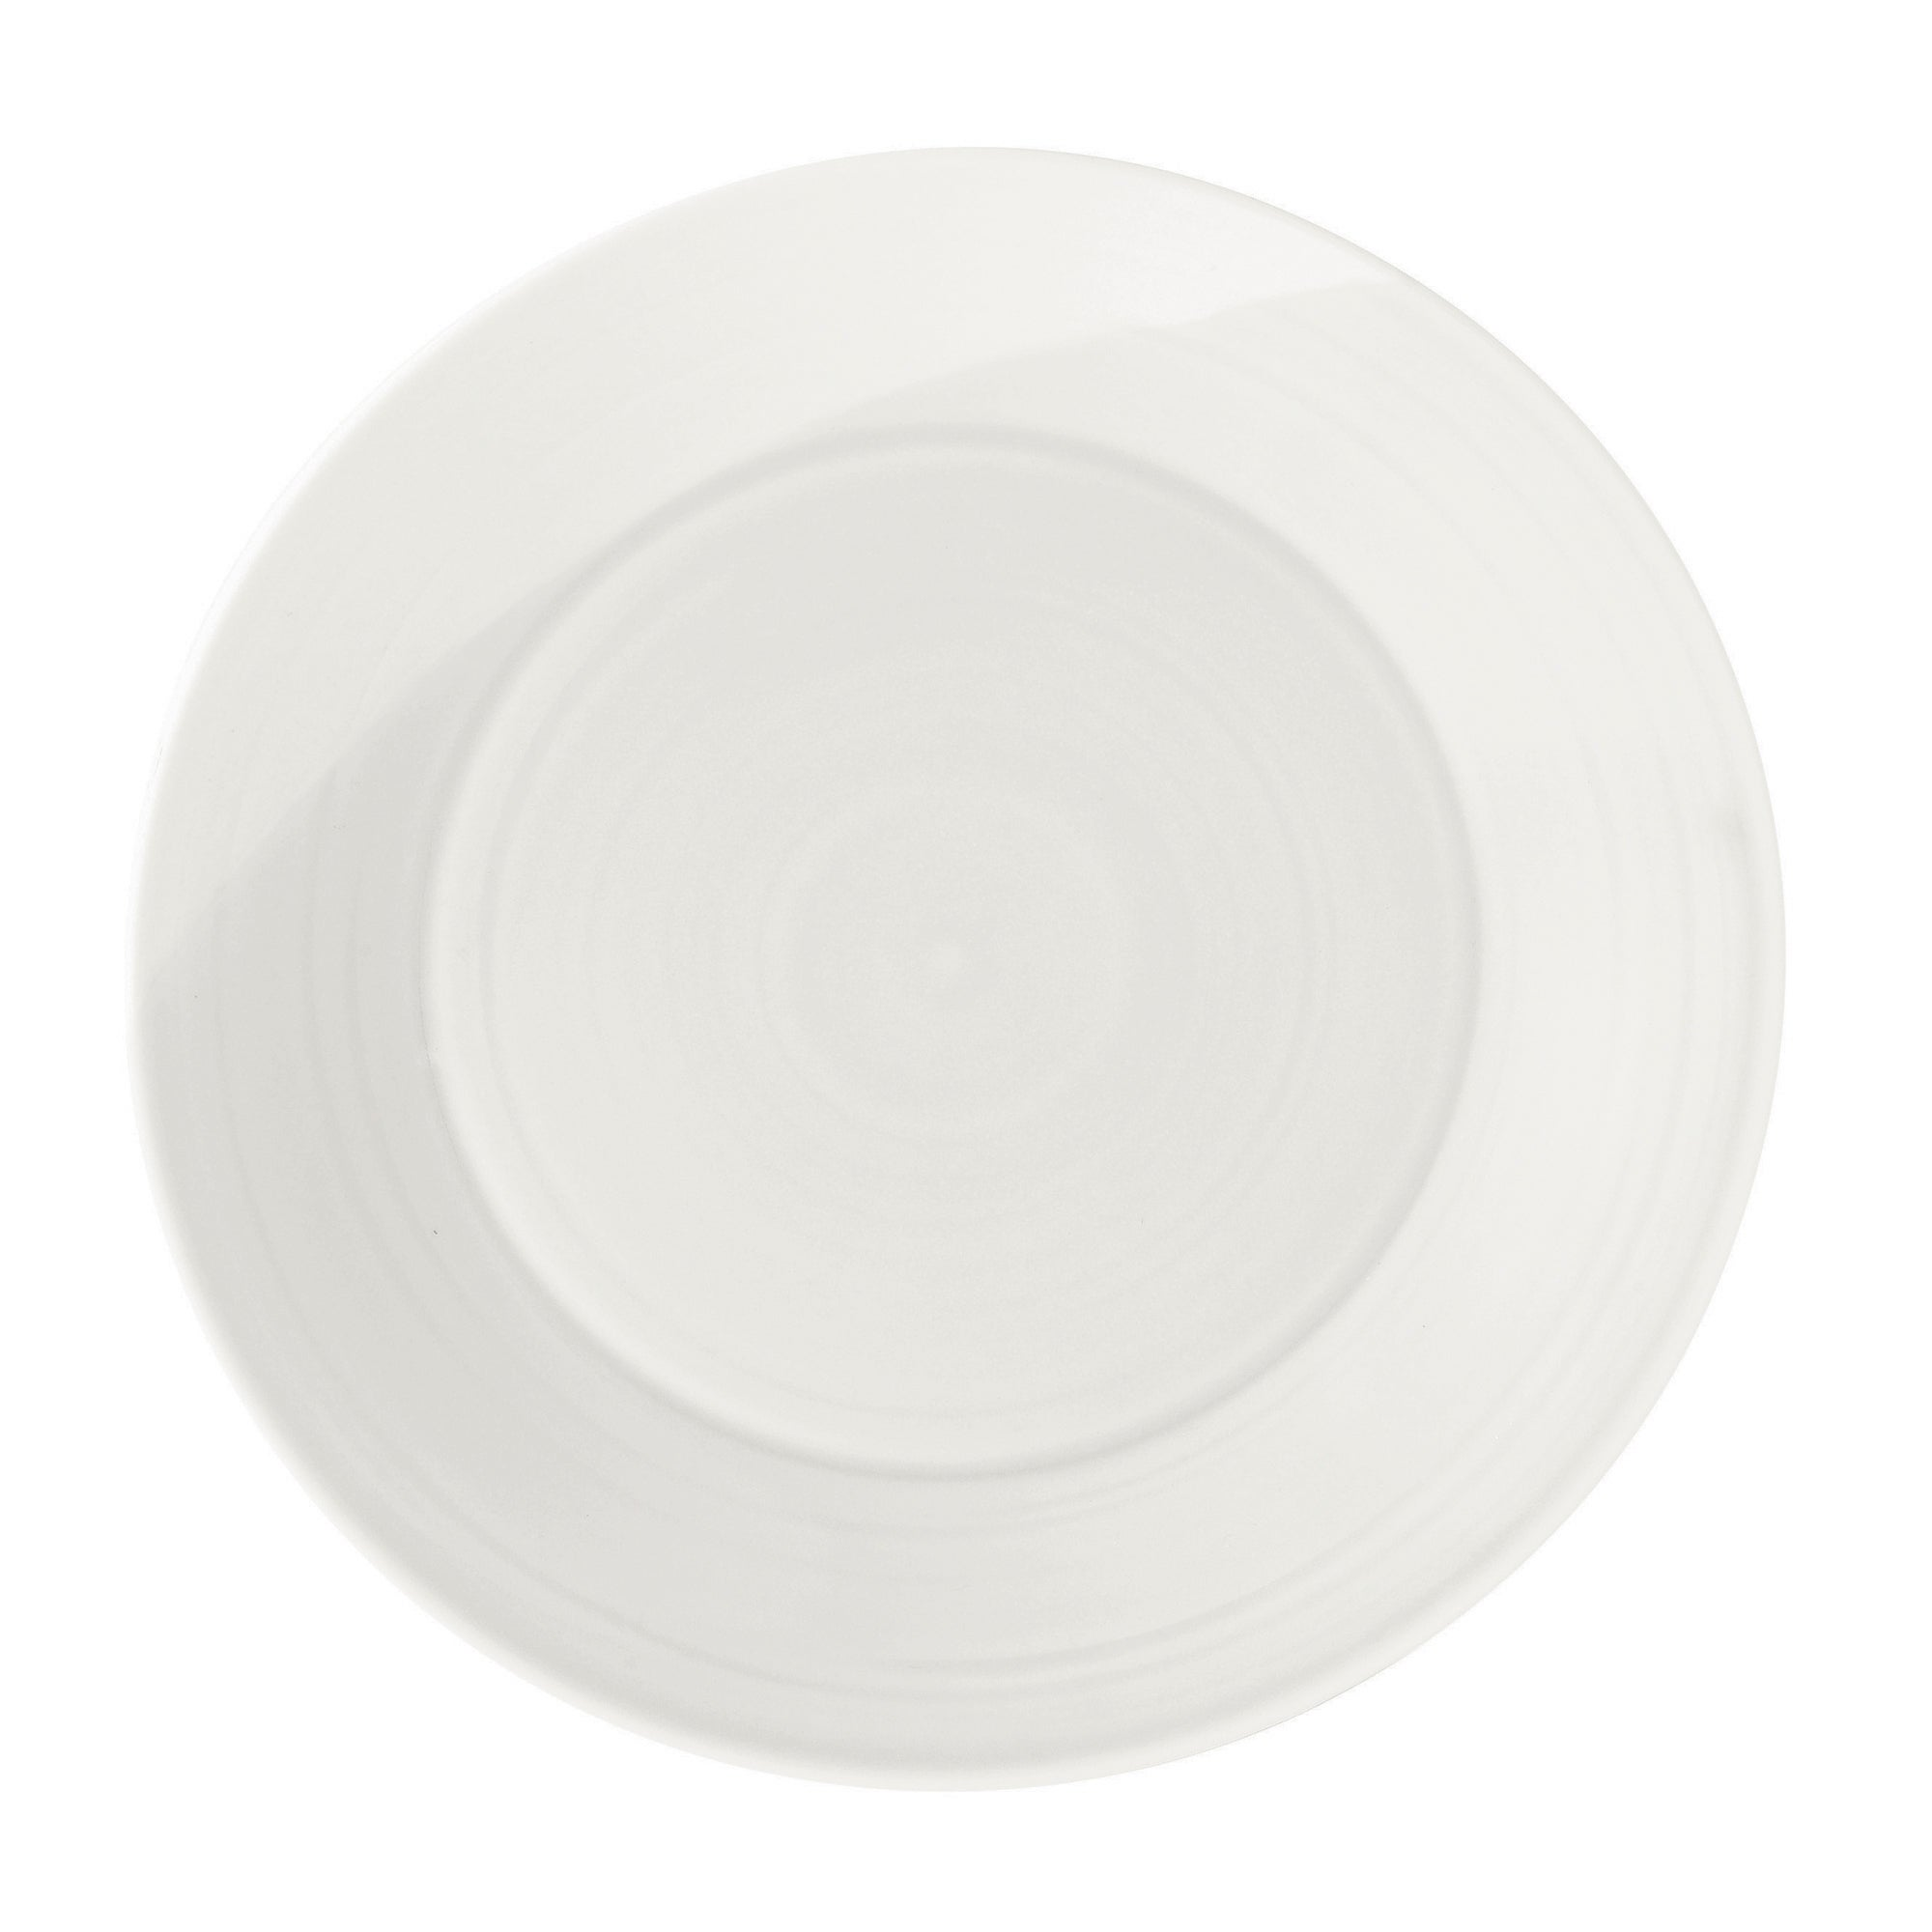 Royal Doulton White 1815 Collection Side Plate